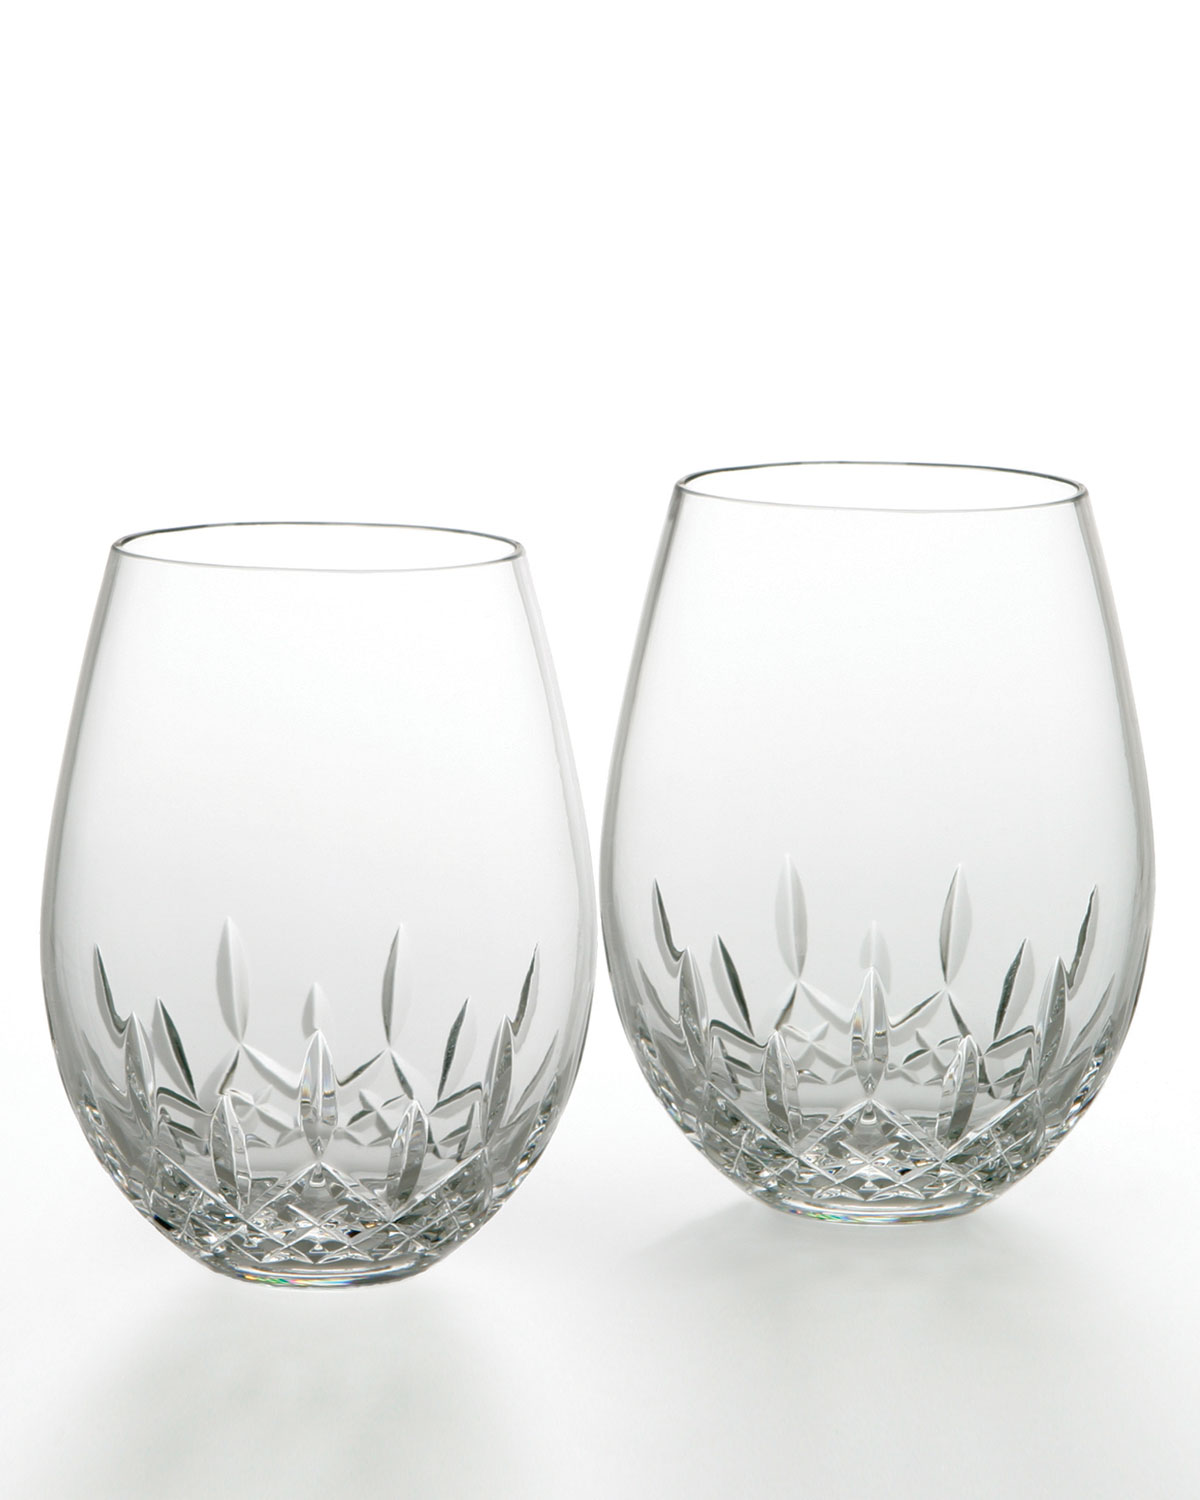 waterford crystal lismore nouveau stemless deep red wine glasses set of 2 neiman marcus. Black Bedroom Furniture Sets. Home Design Ideas